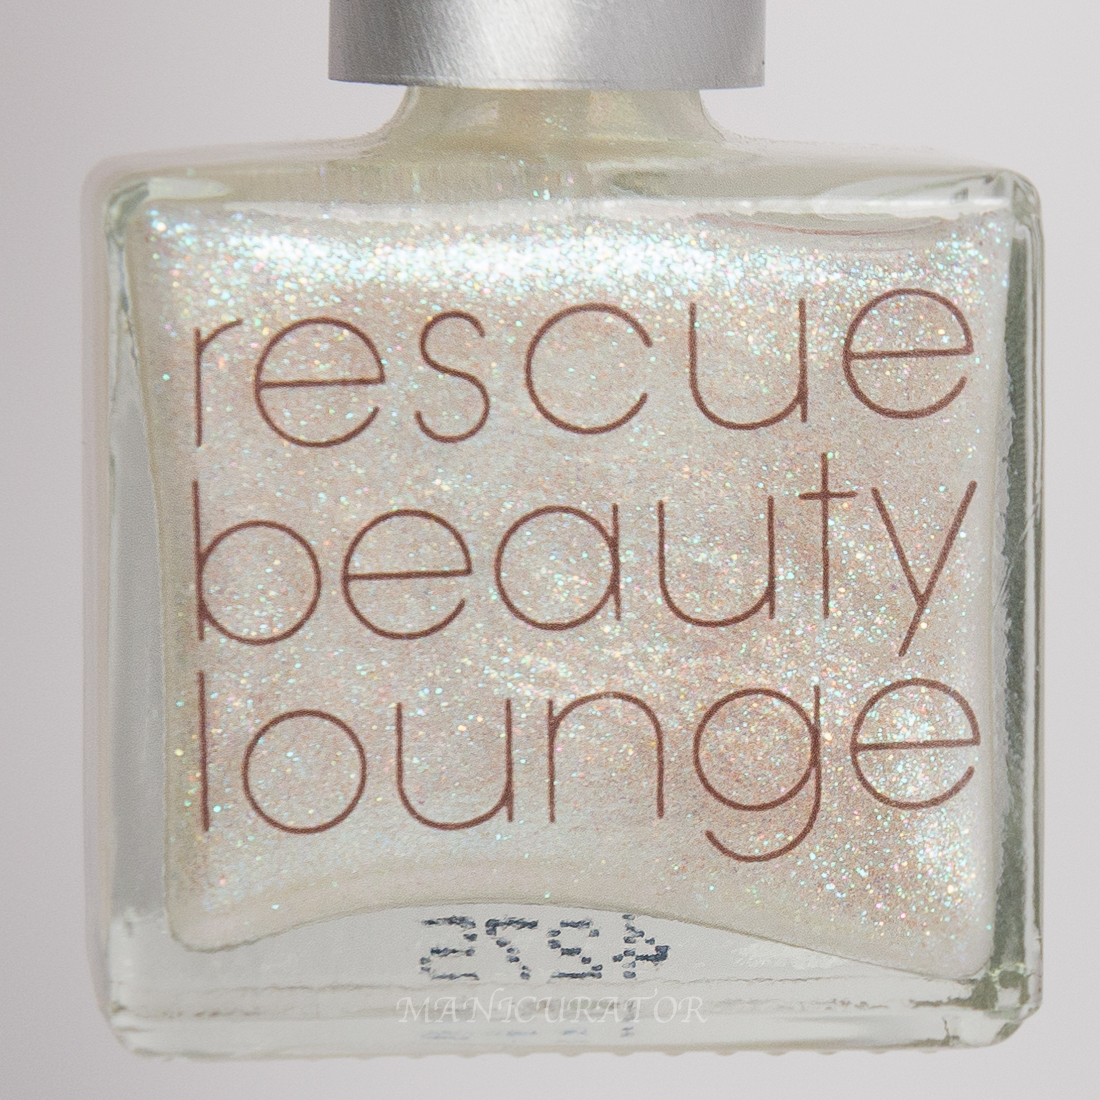 R29-Rescue-Beauty-Lounge-Bubblegum-Punk